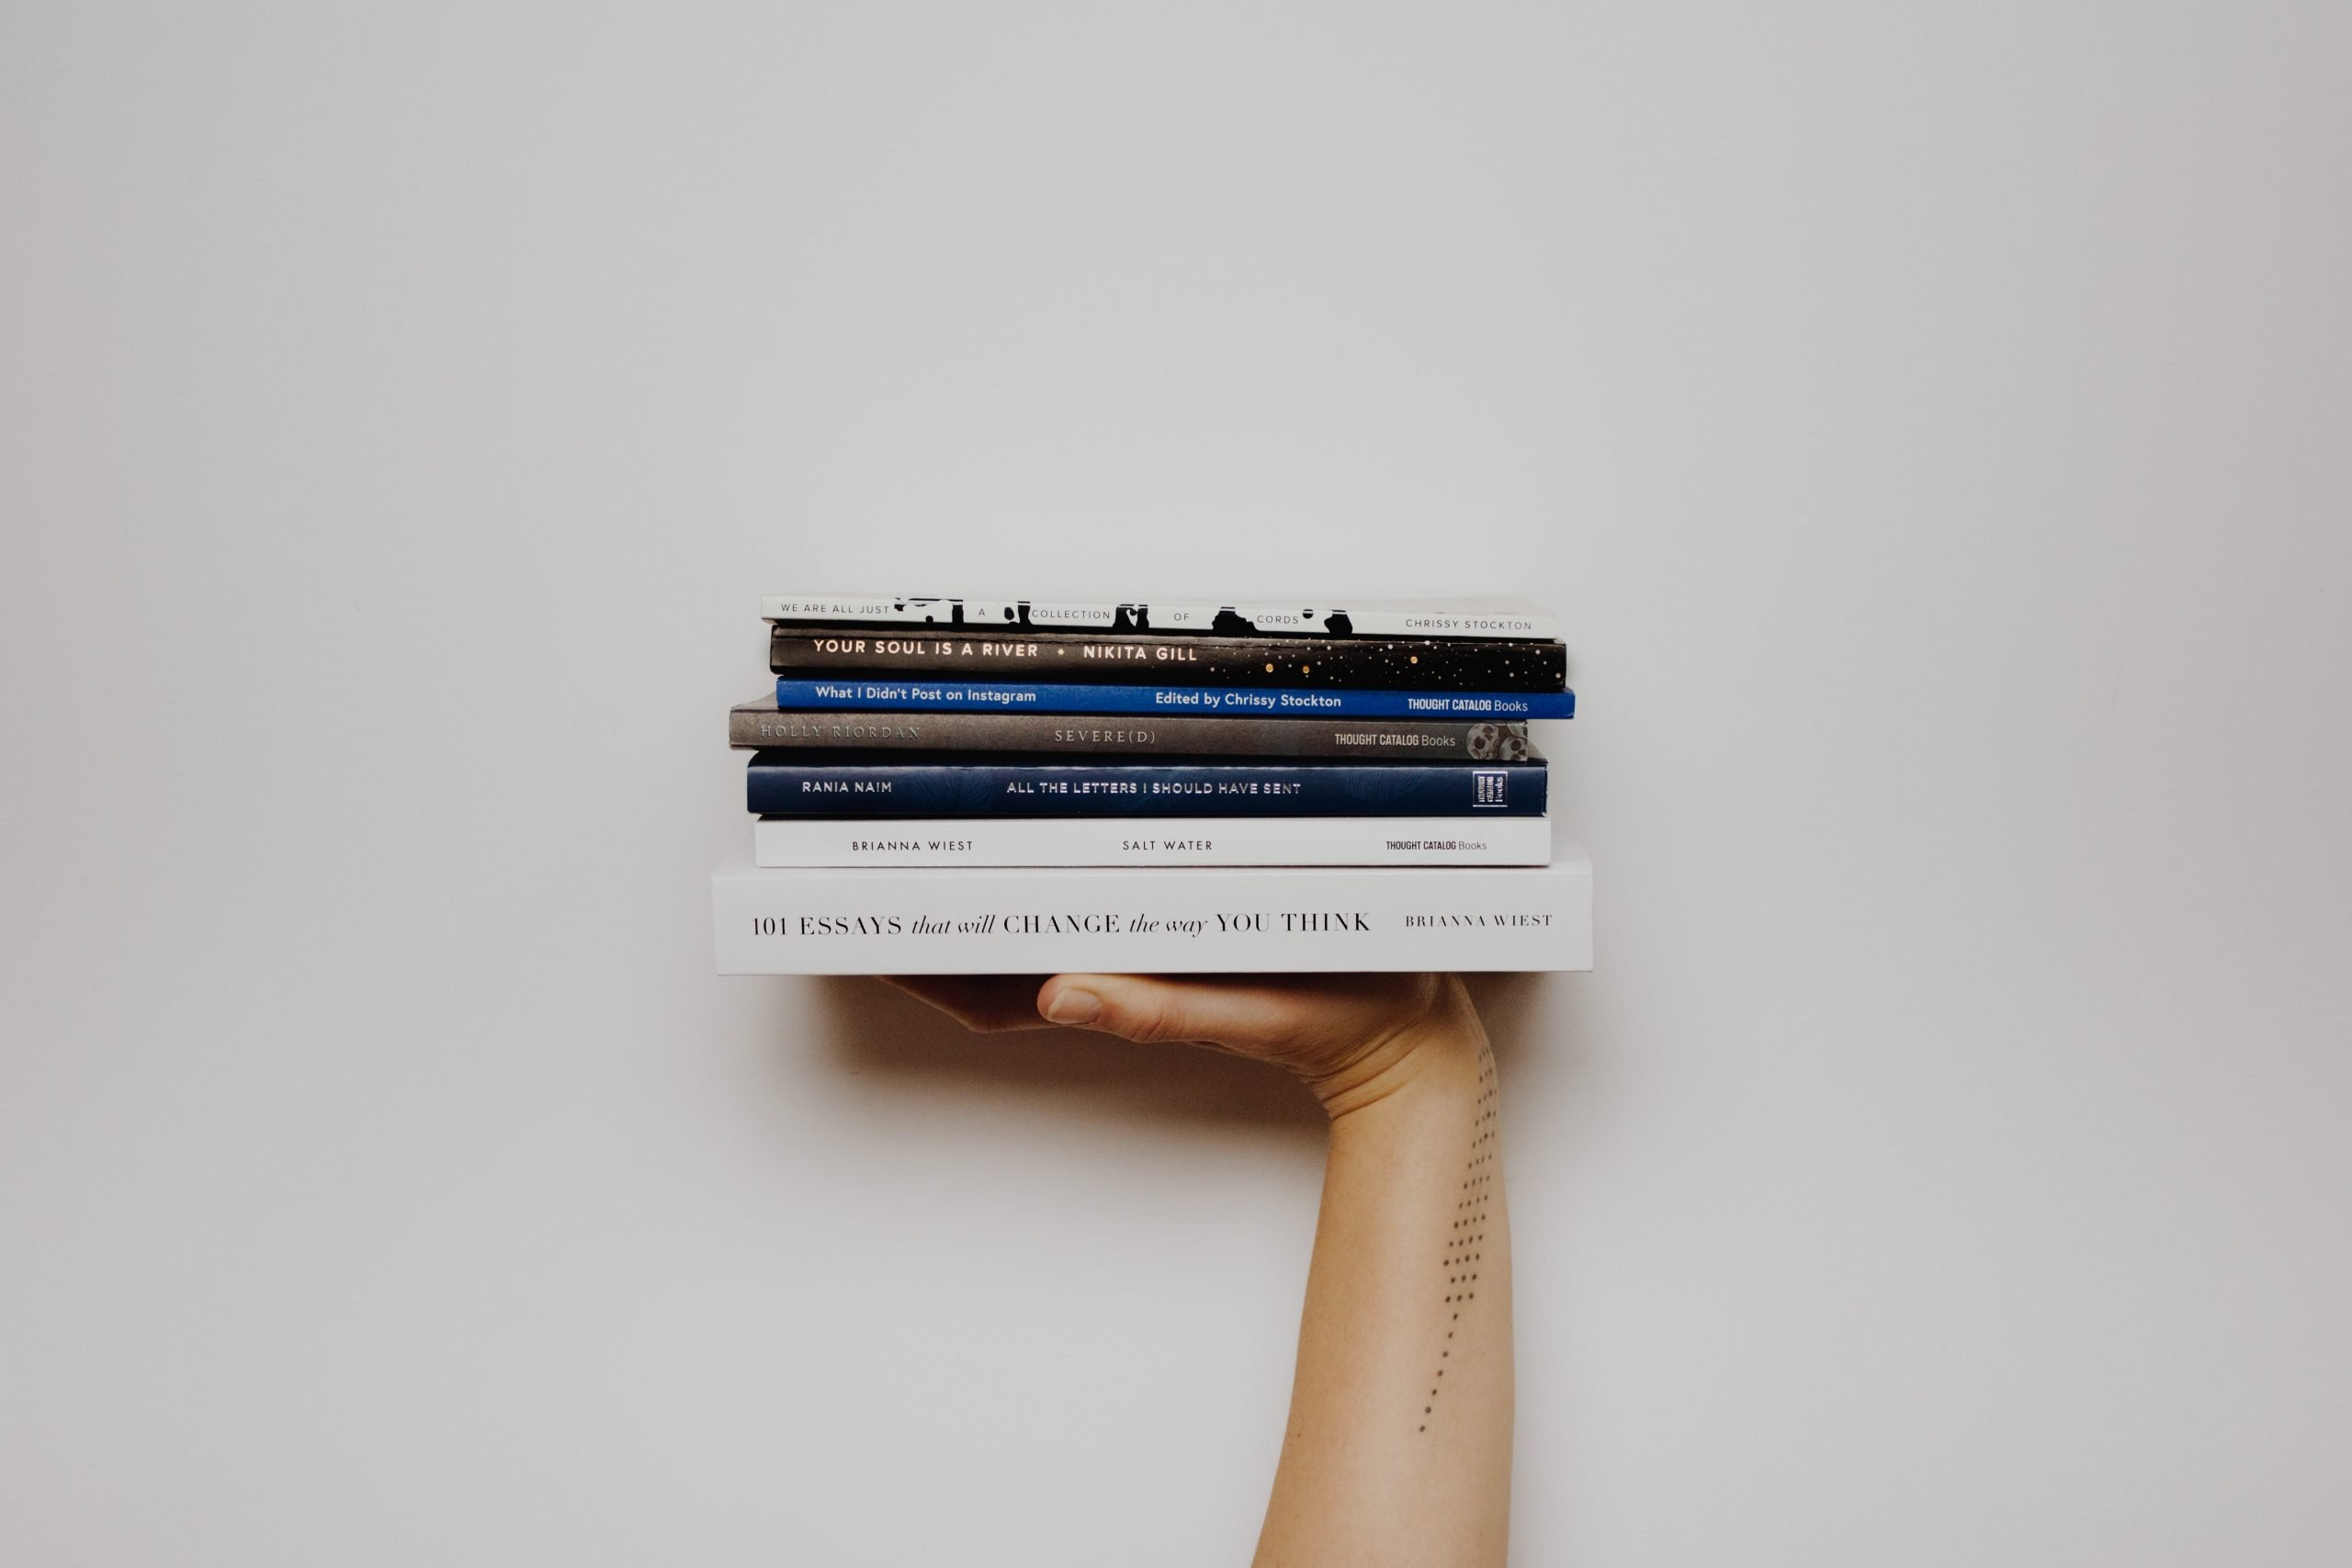 Woman with a tattoo holding up a stack of books.